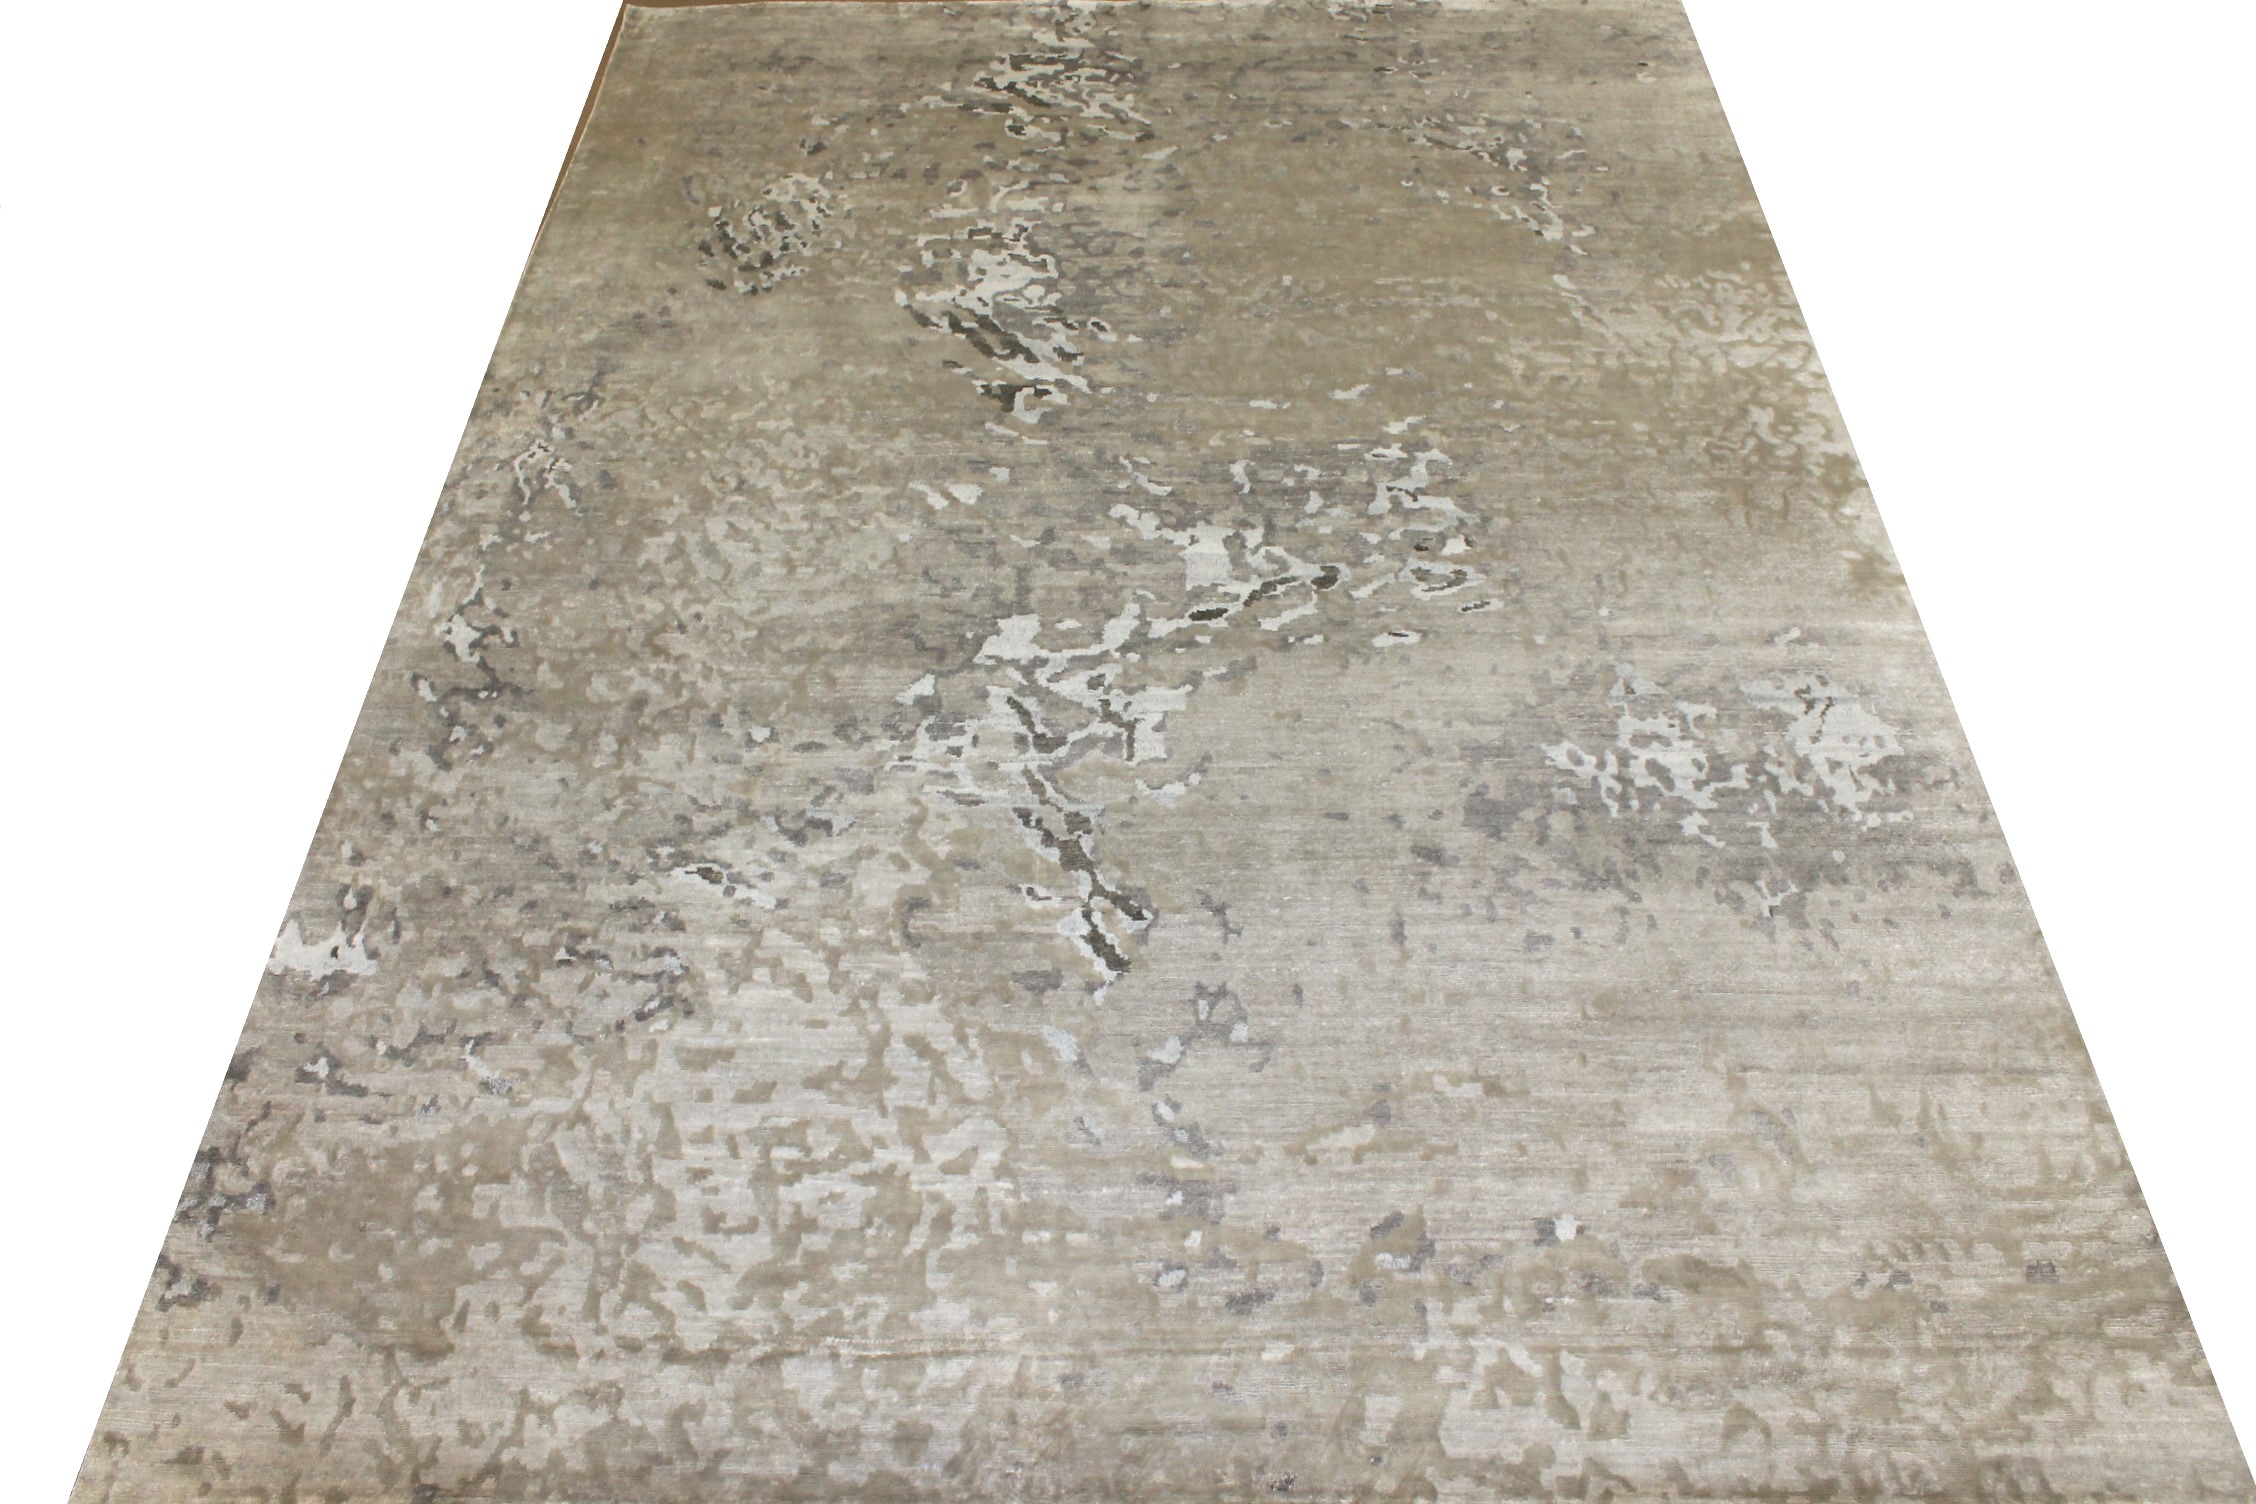 10x14 Modern Hand Knotted Wool & Bamboo Silk Area Rug - MR024884